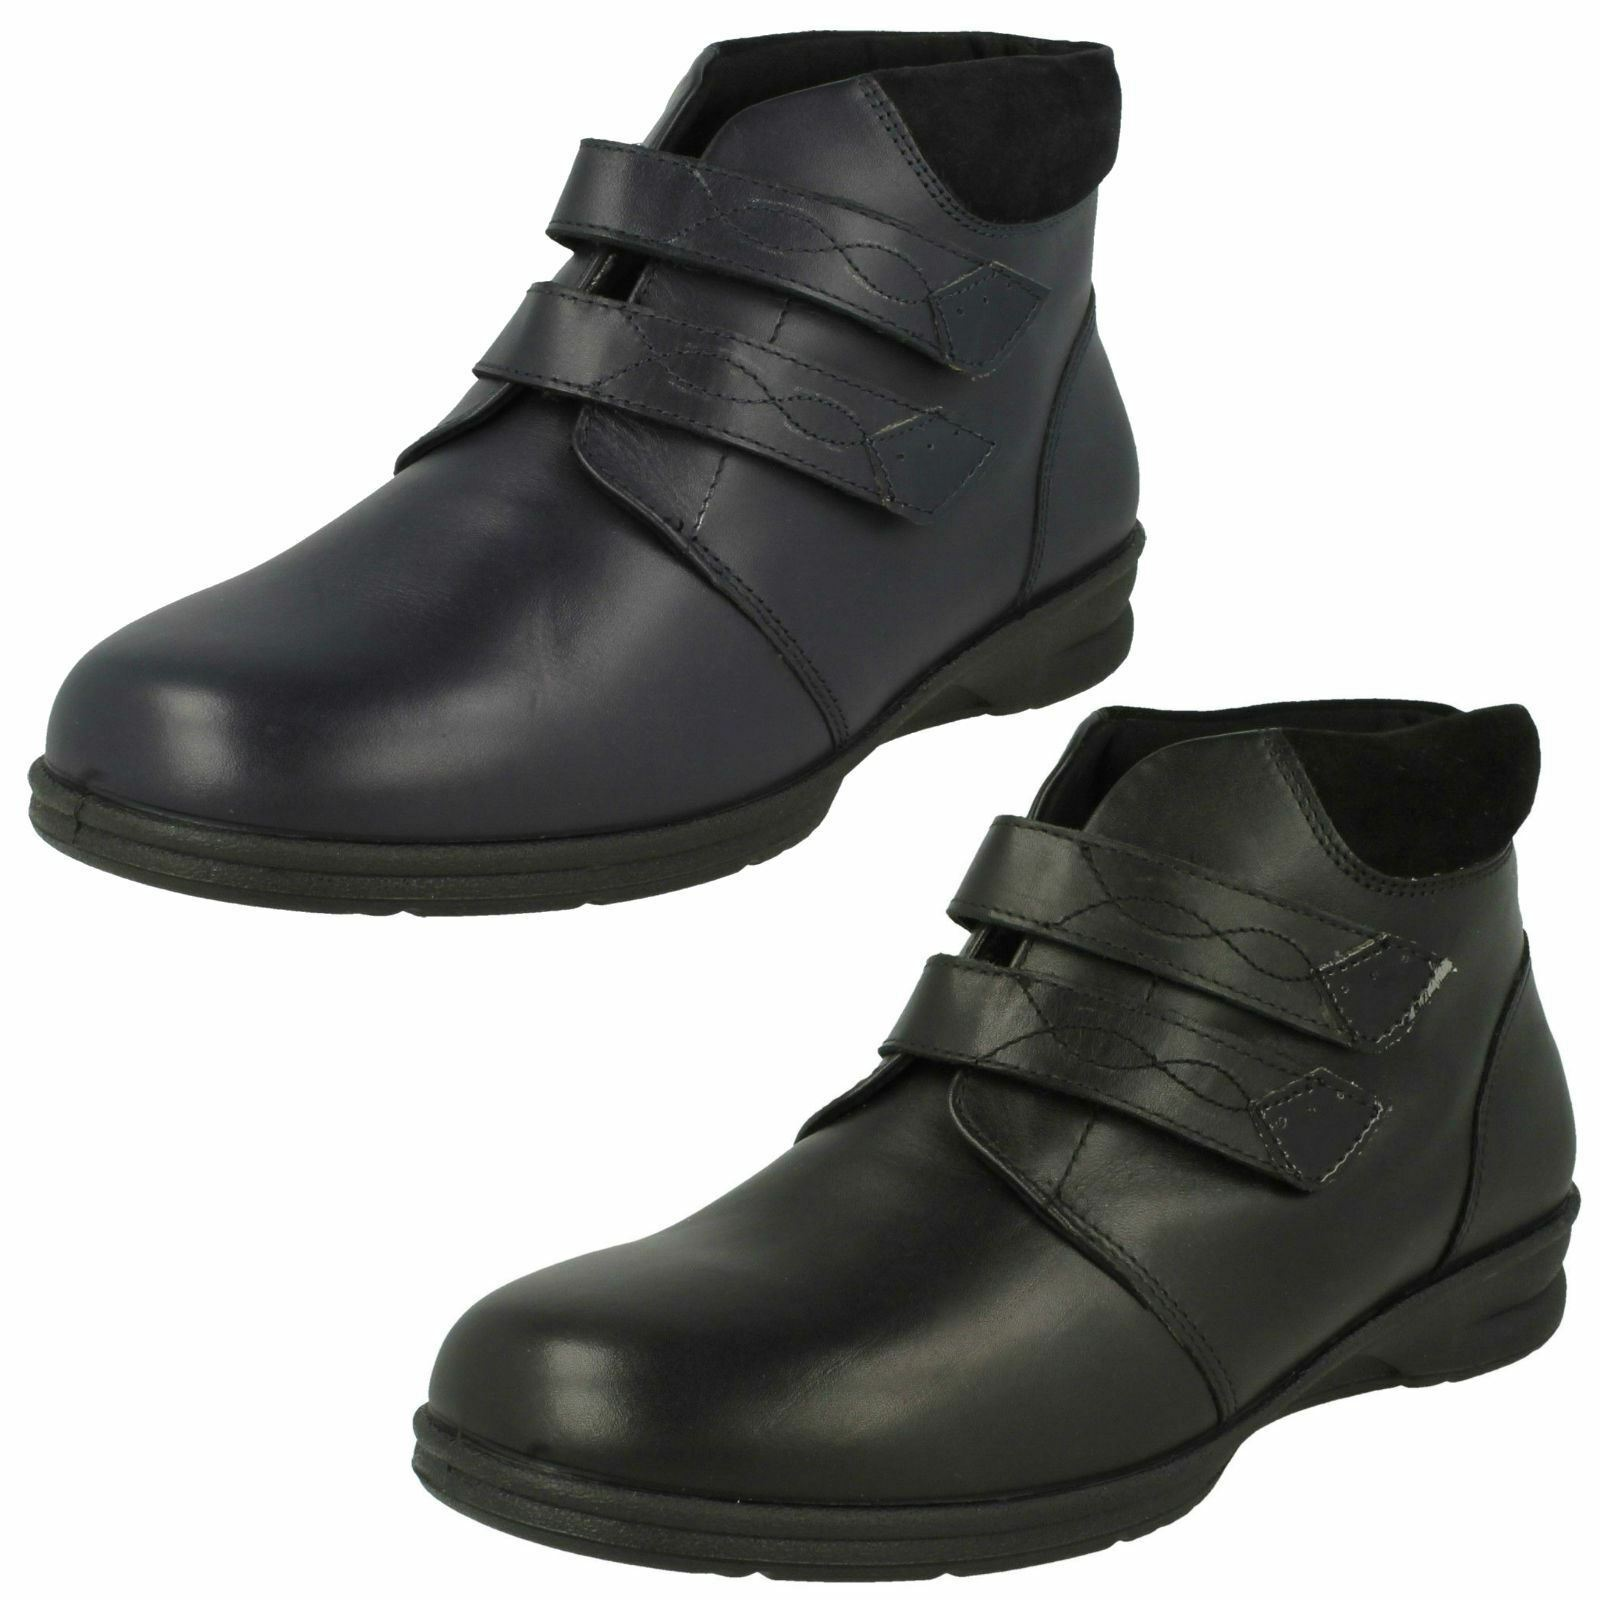 'Ladies Padders' Wide Fitting Ankle Boots - Kathy